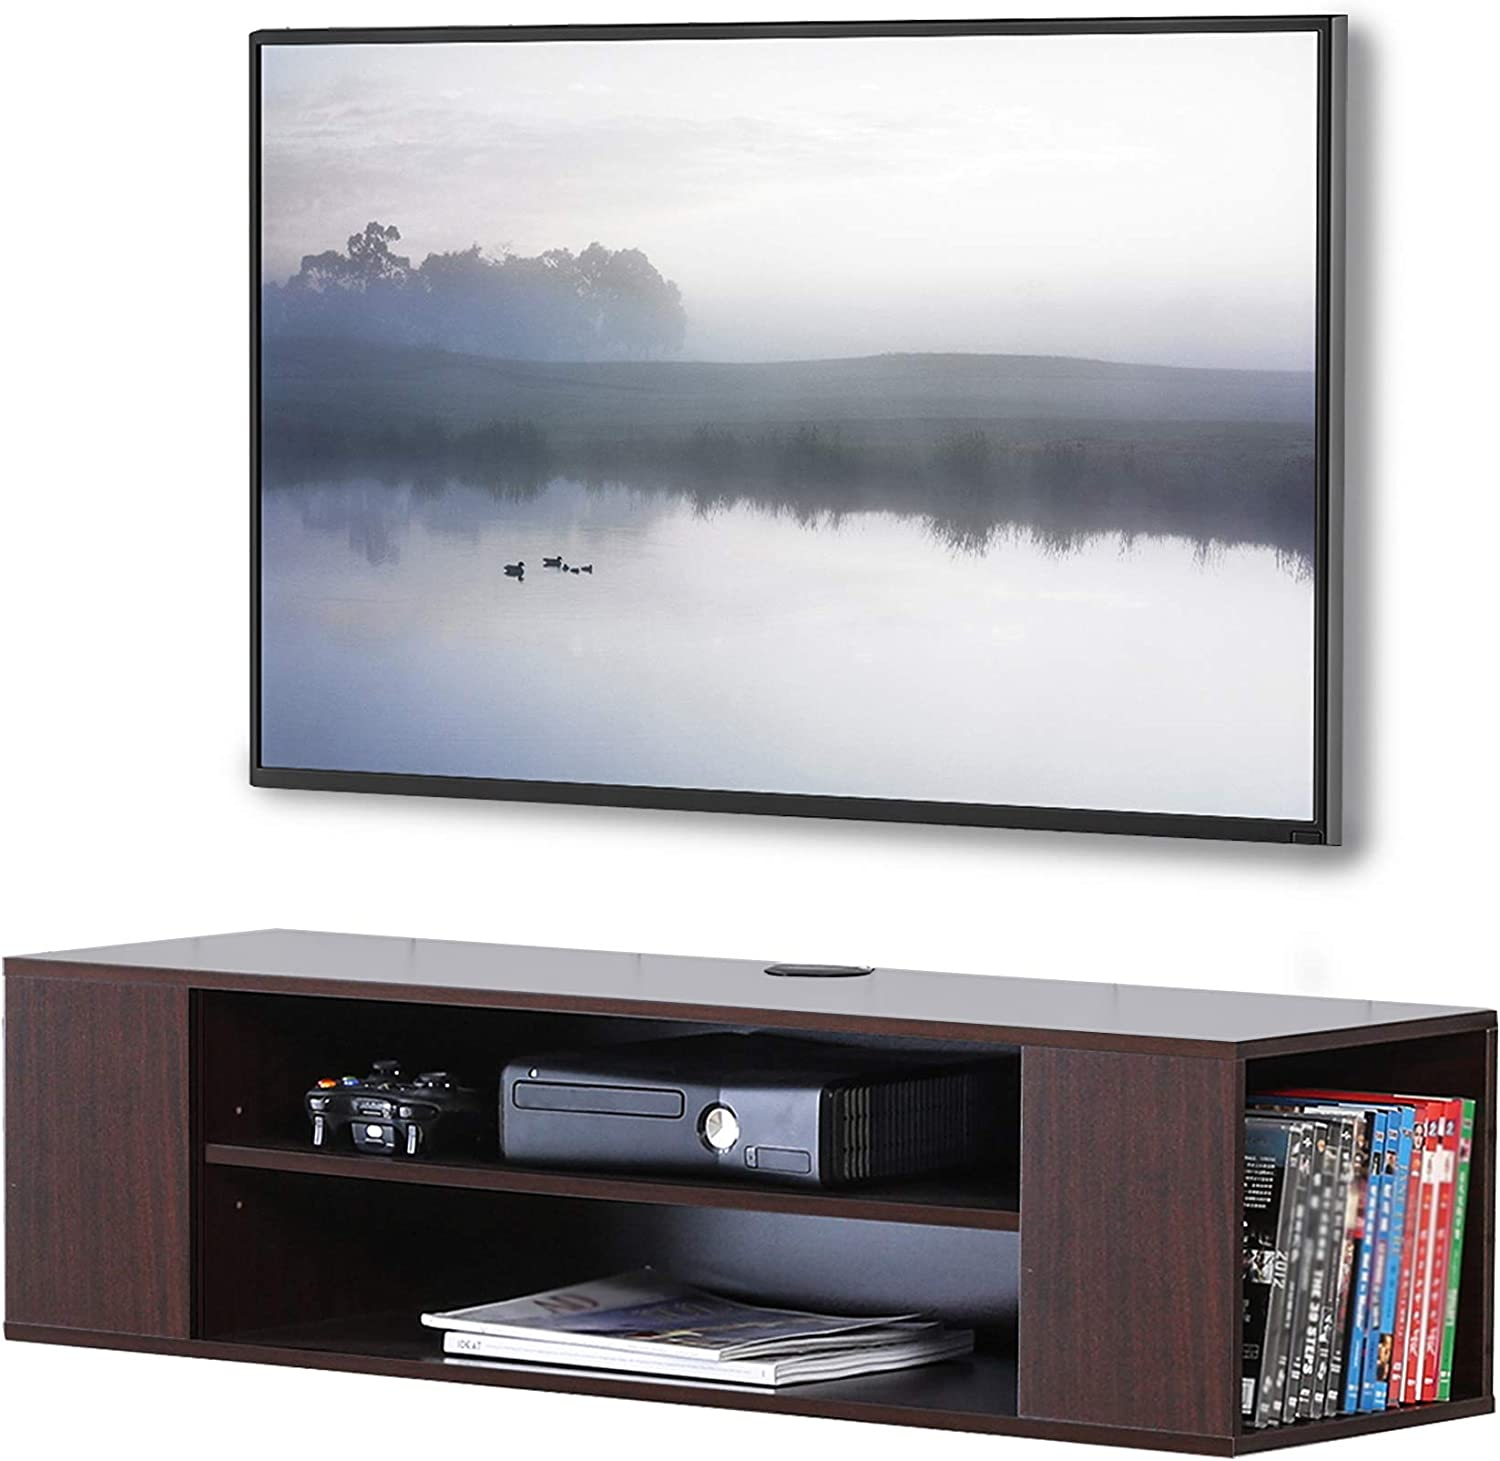 Amazon Com Fitueyes Wall Mounted Media Console Modern Floating Tv Stand Shelf Entertainment Center Storage Component Shelves For Xbox One Ps4 Vizio Sumsung Sony Tv Brown Furniture Decor